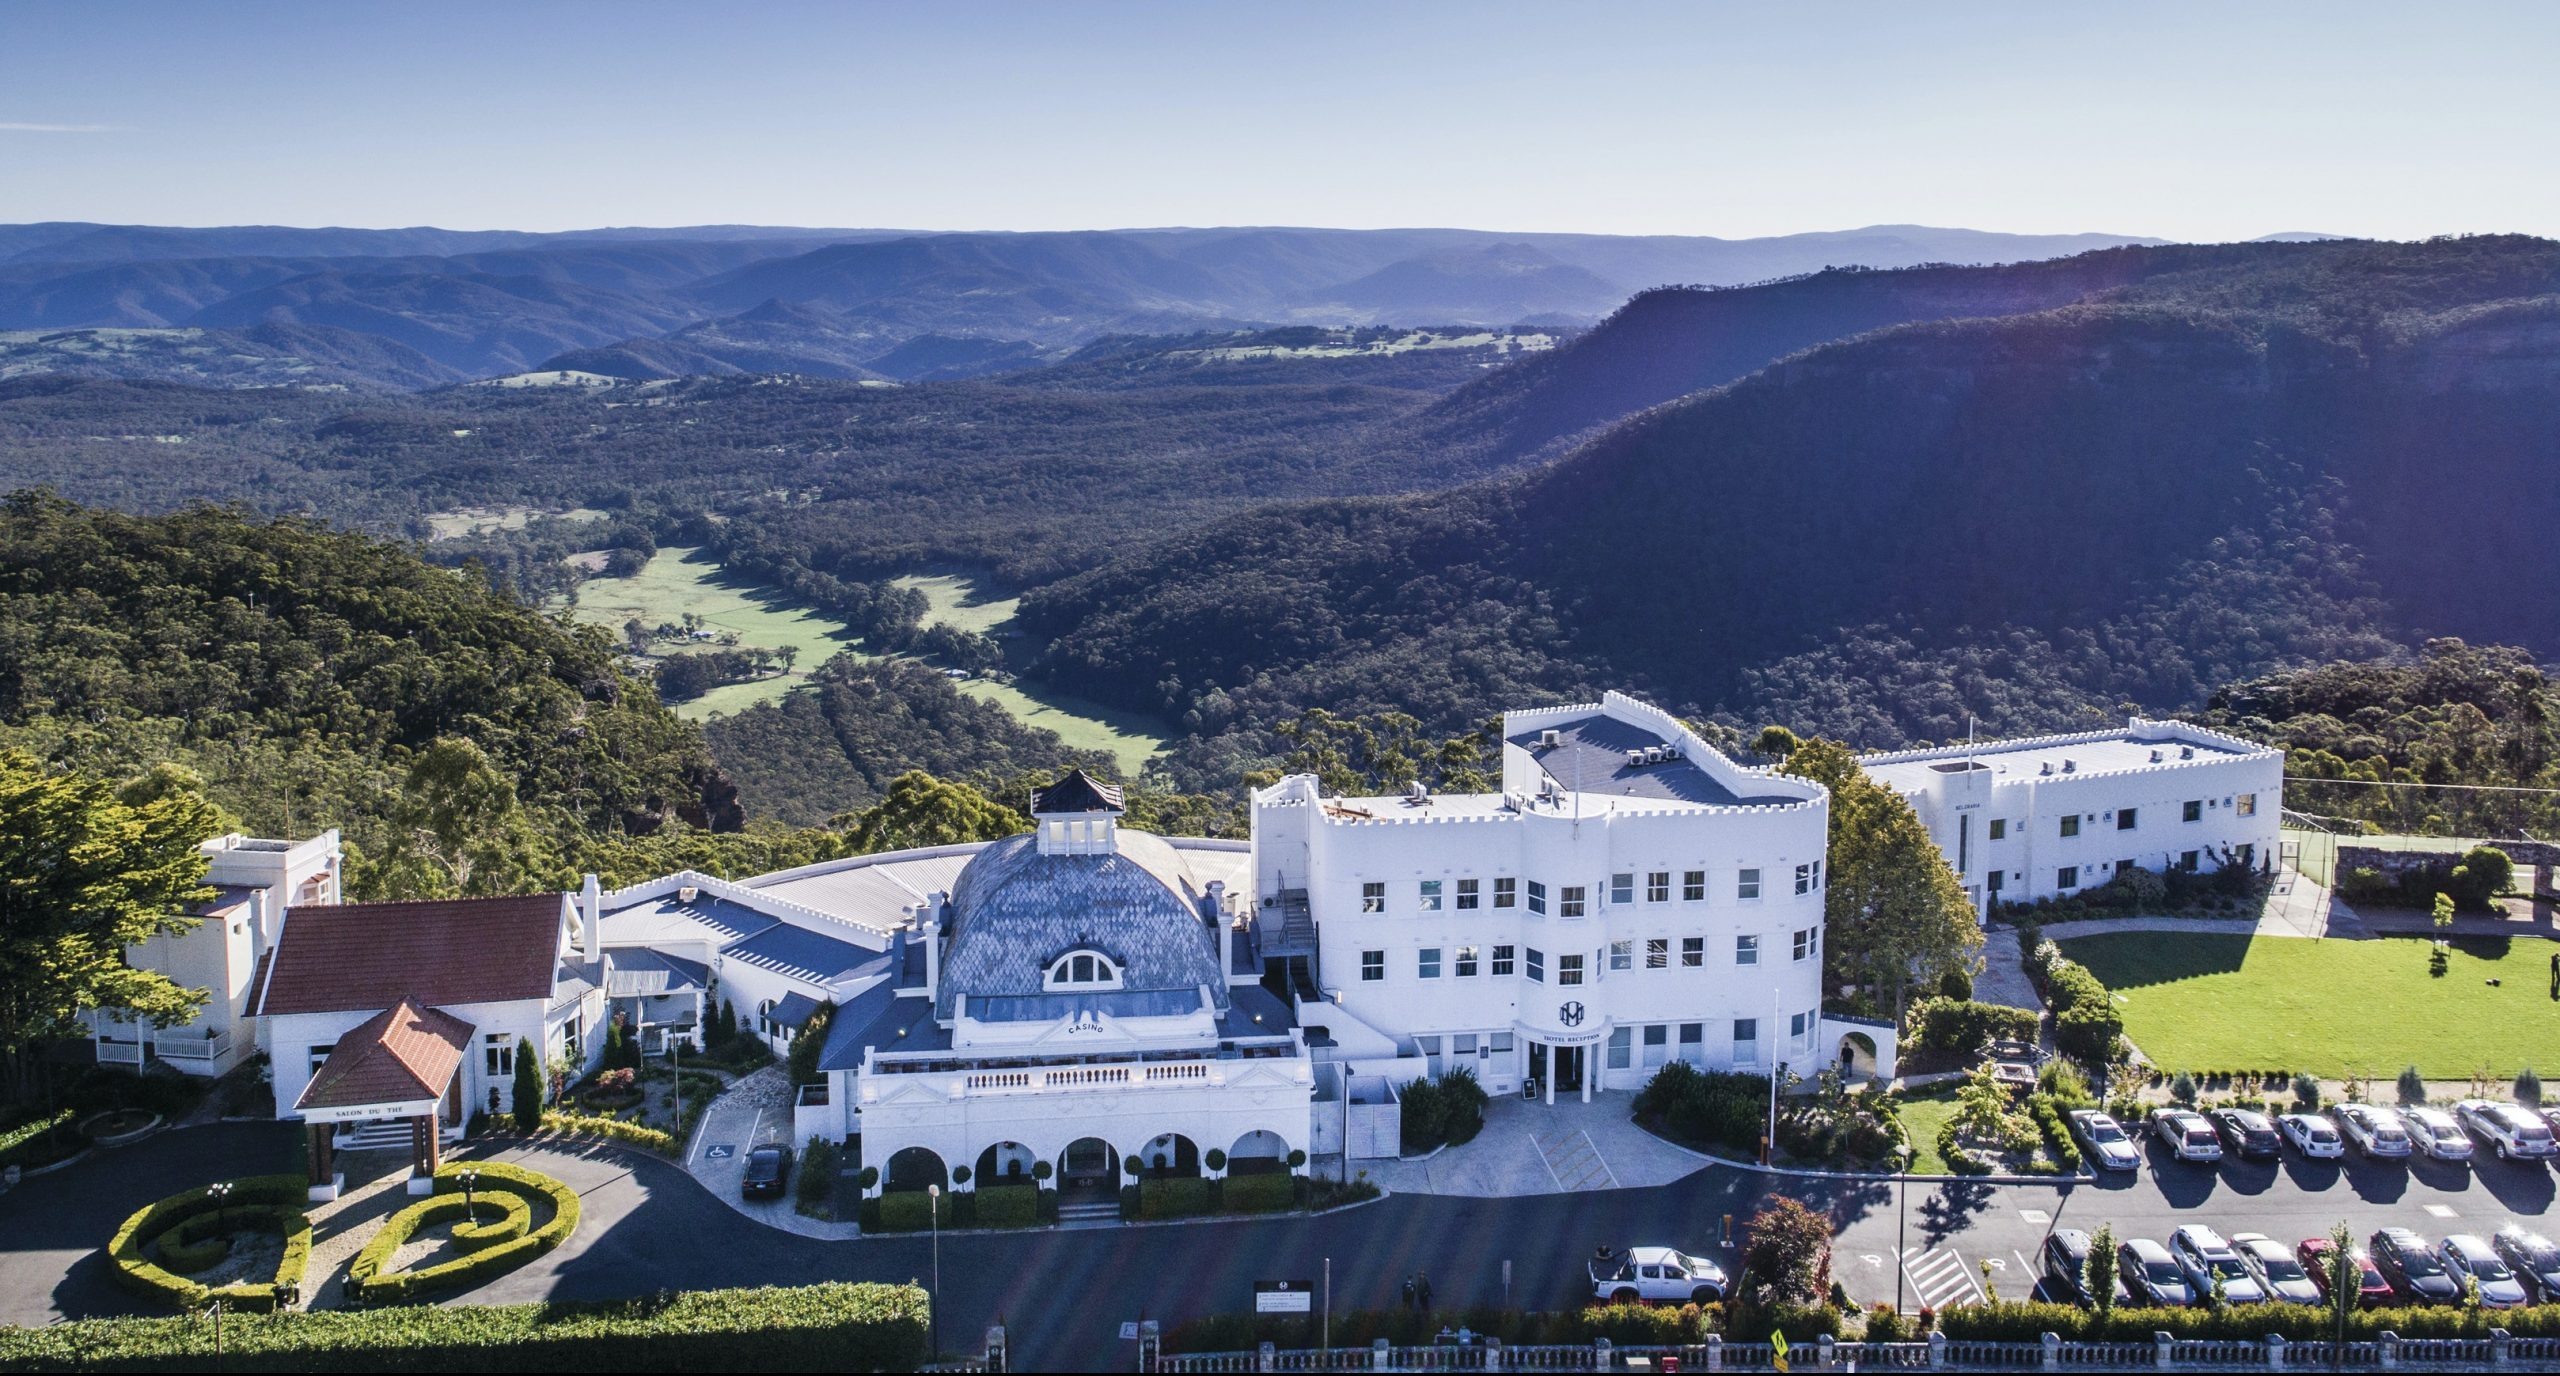 Popular Blue Mountains Accommodation: Luxury Retreats in the Clouds